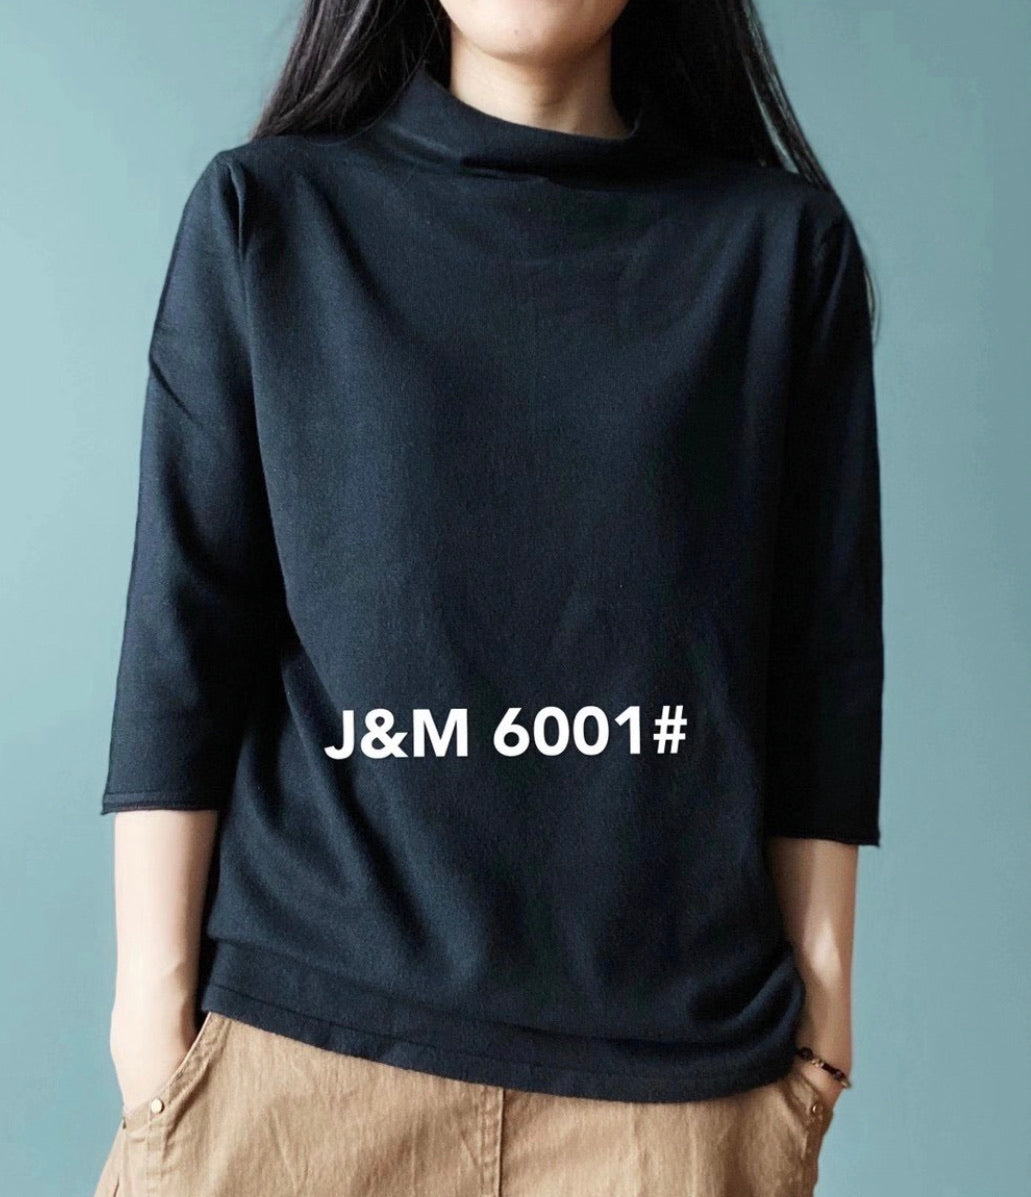 J.M 6001 MOCK TURTLE NECK 40% Cotton, 40% Modal, 20% Polyester